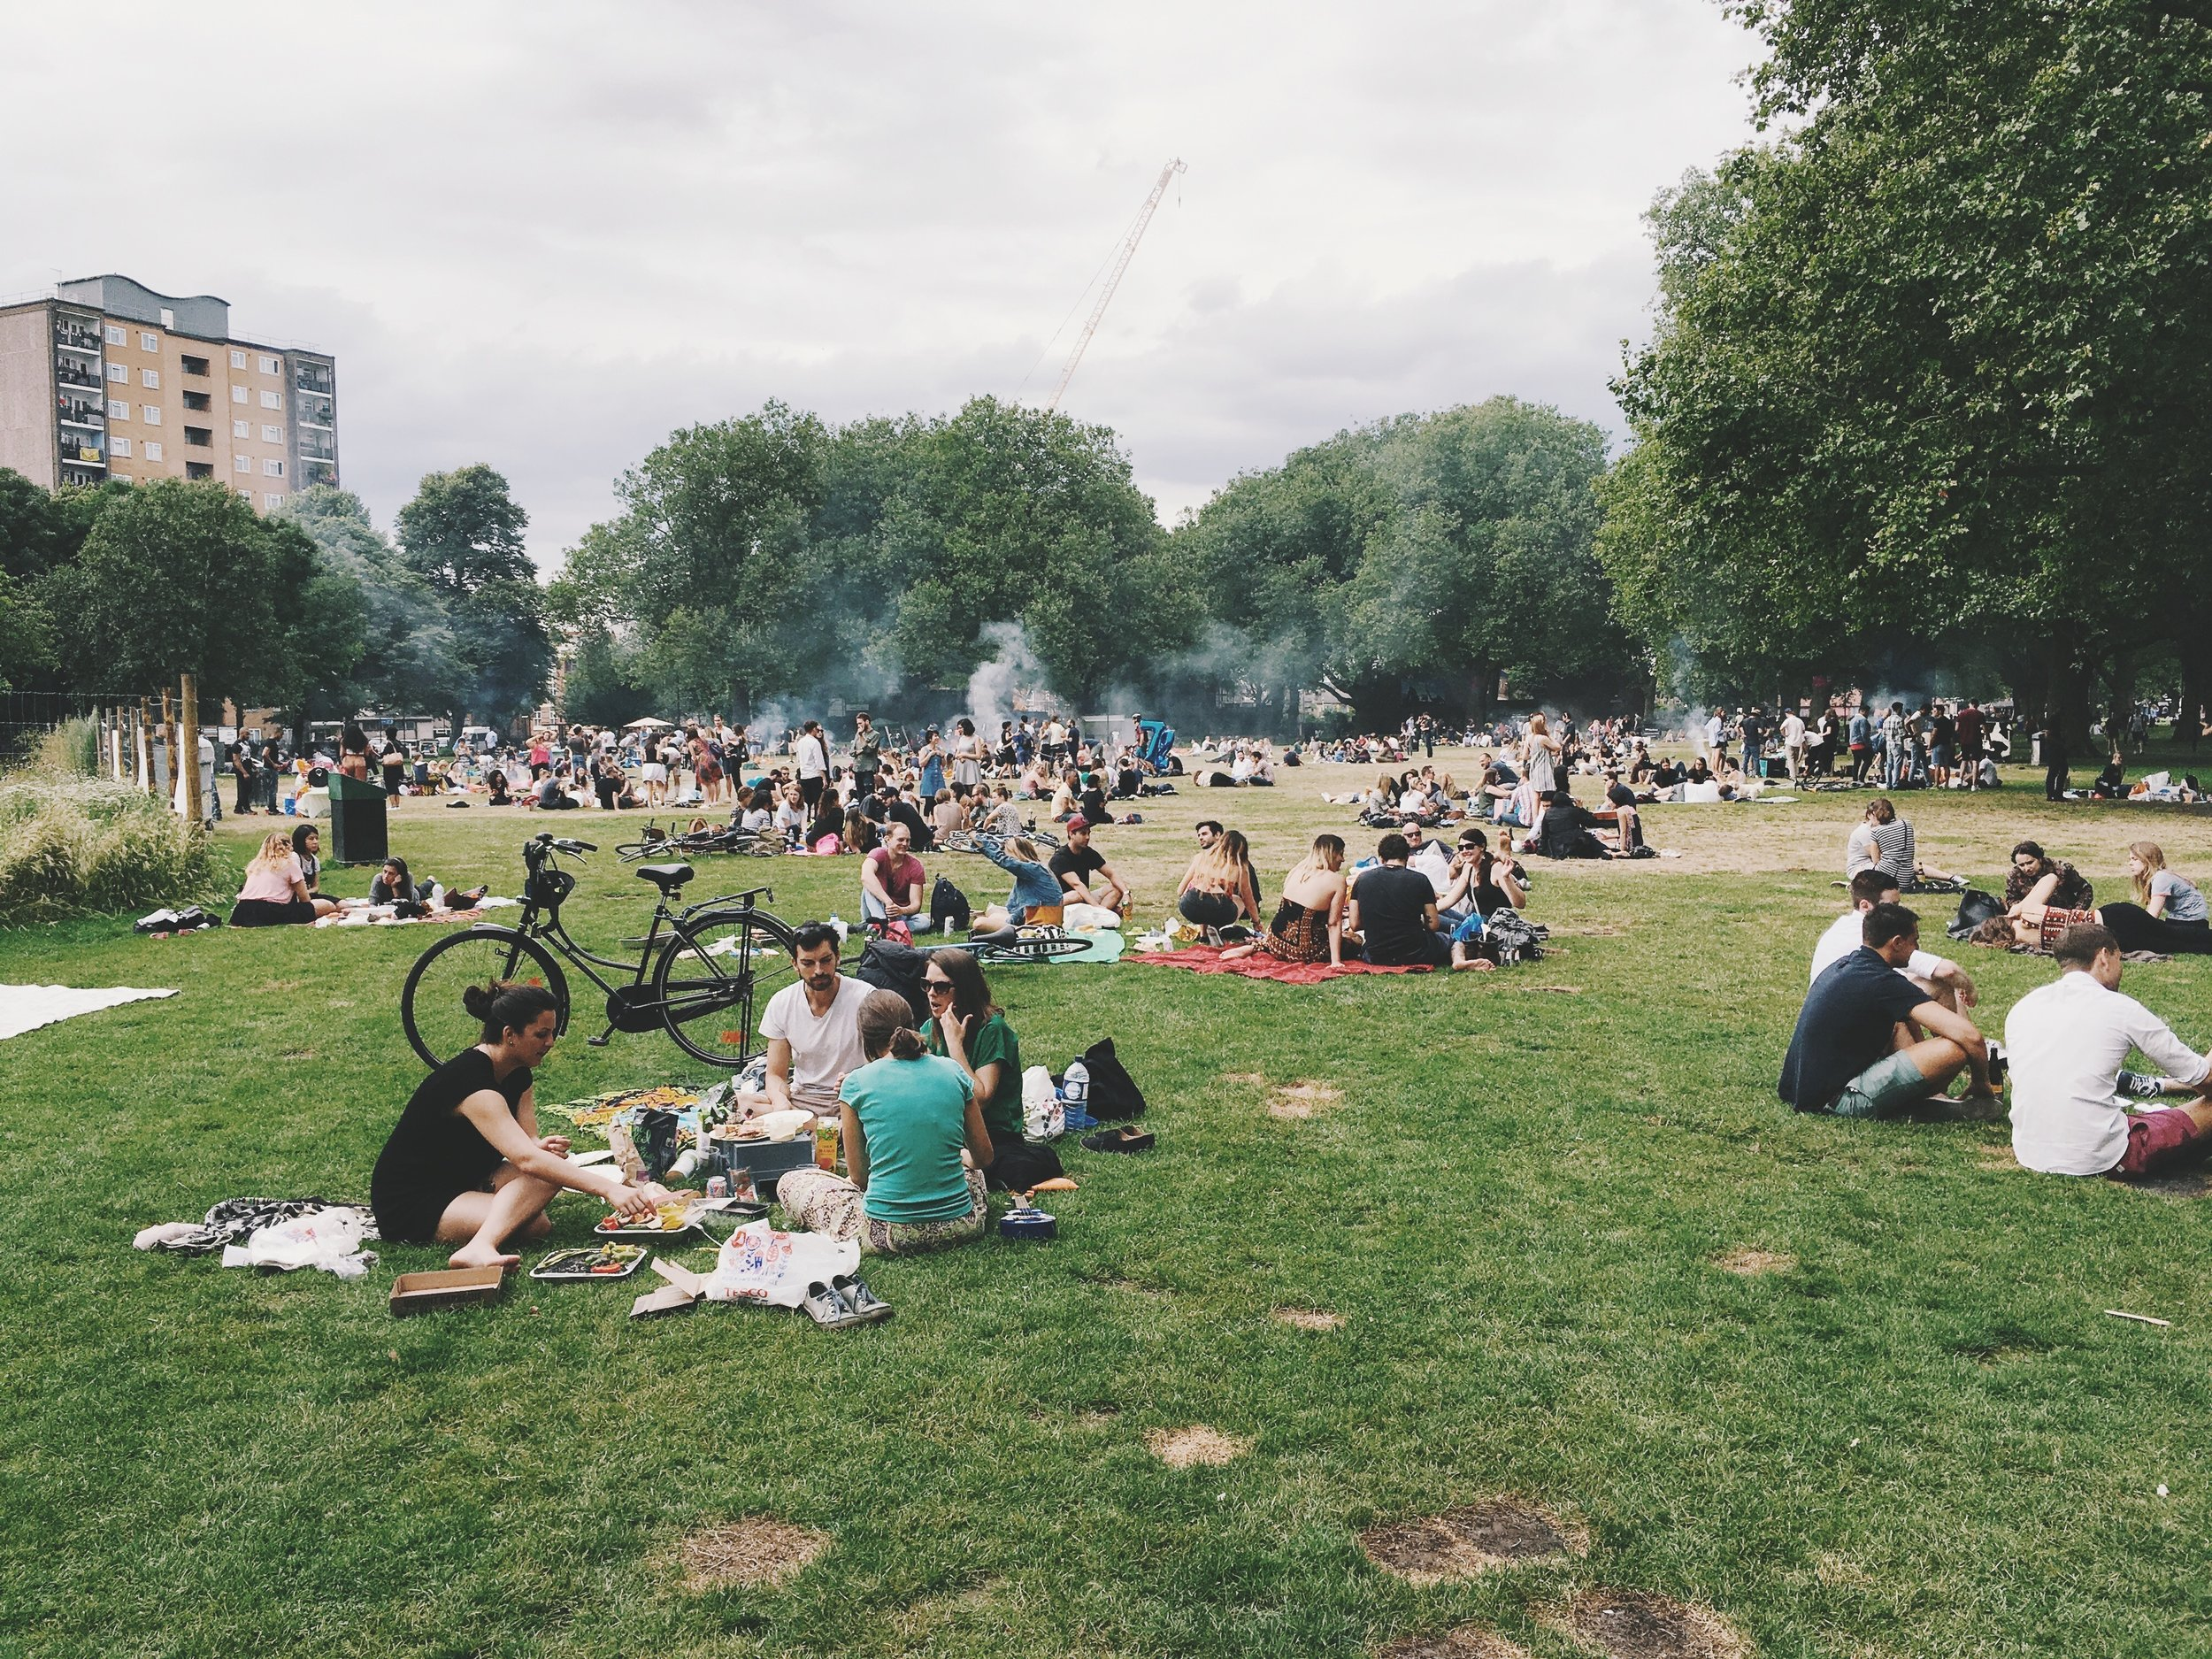 Best Parks in London